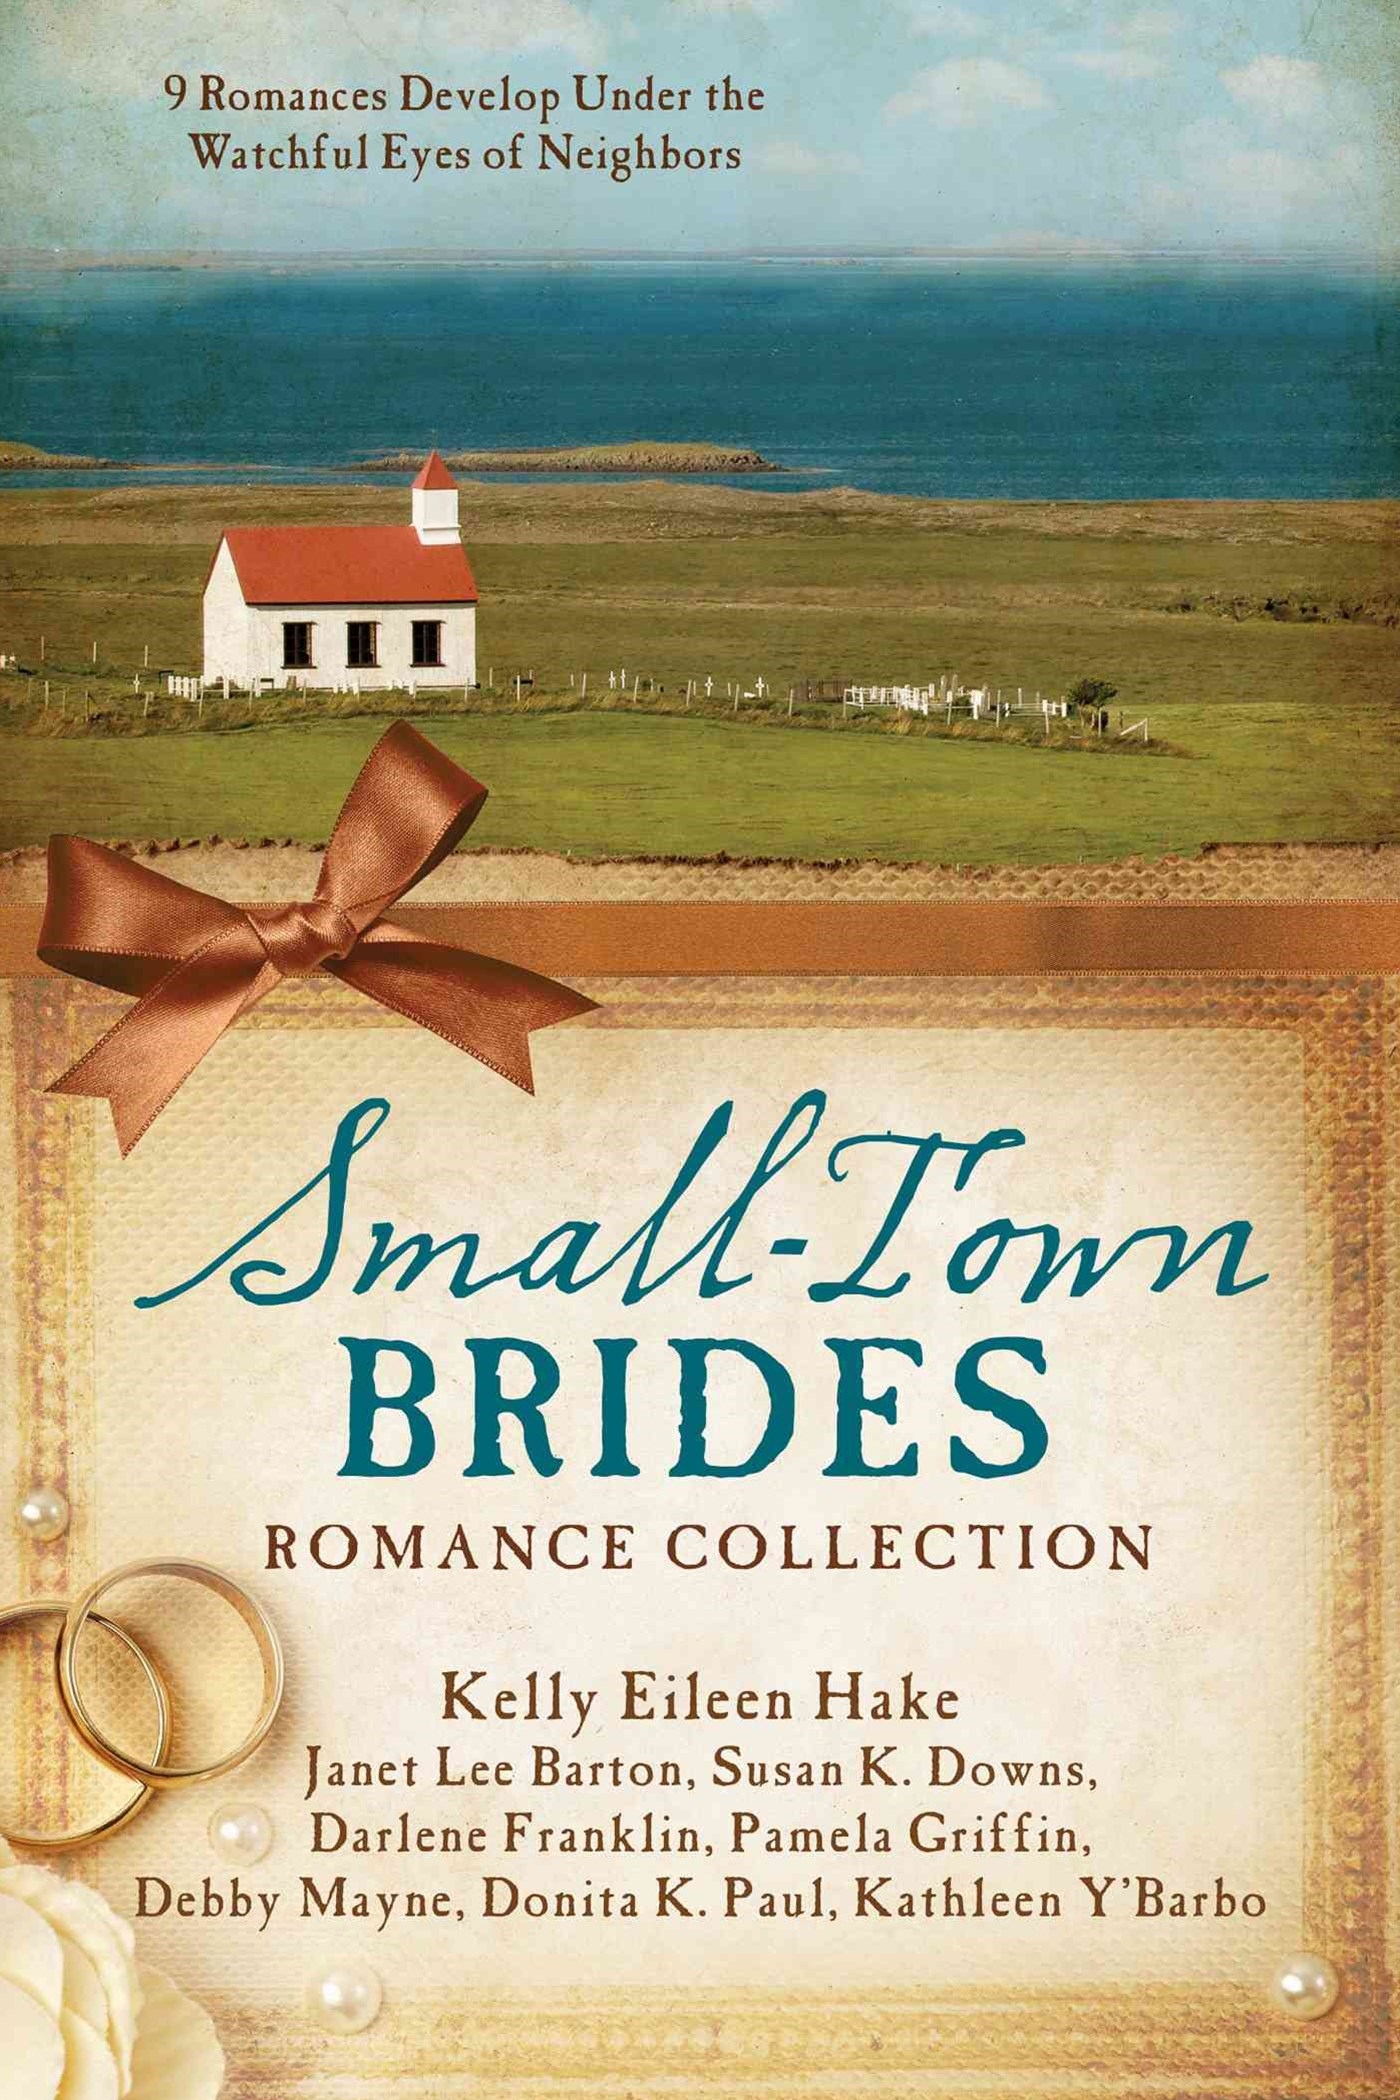 The Small-Town Brides Romance Collection